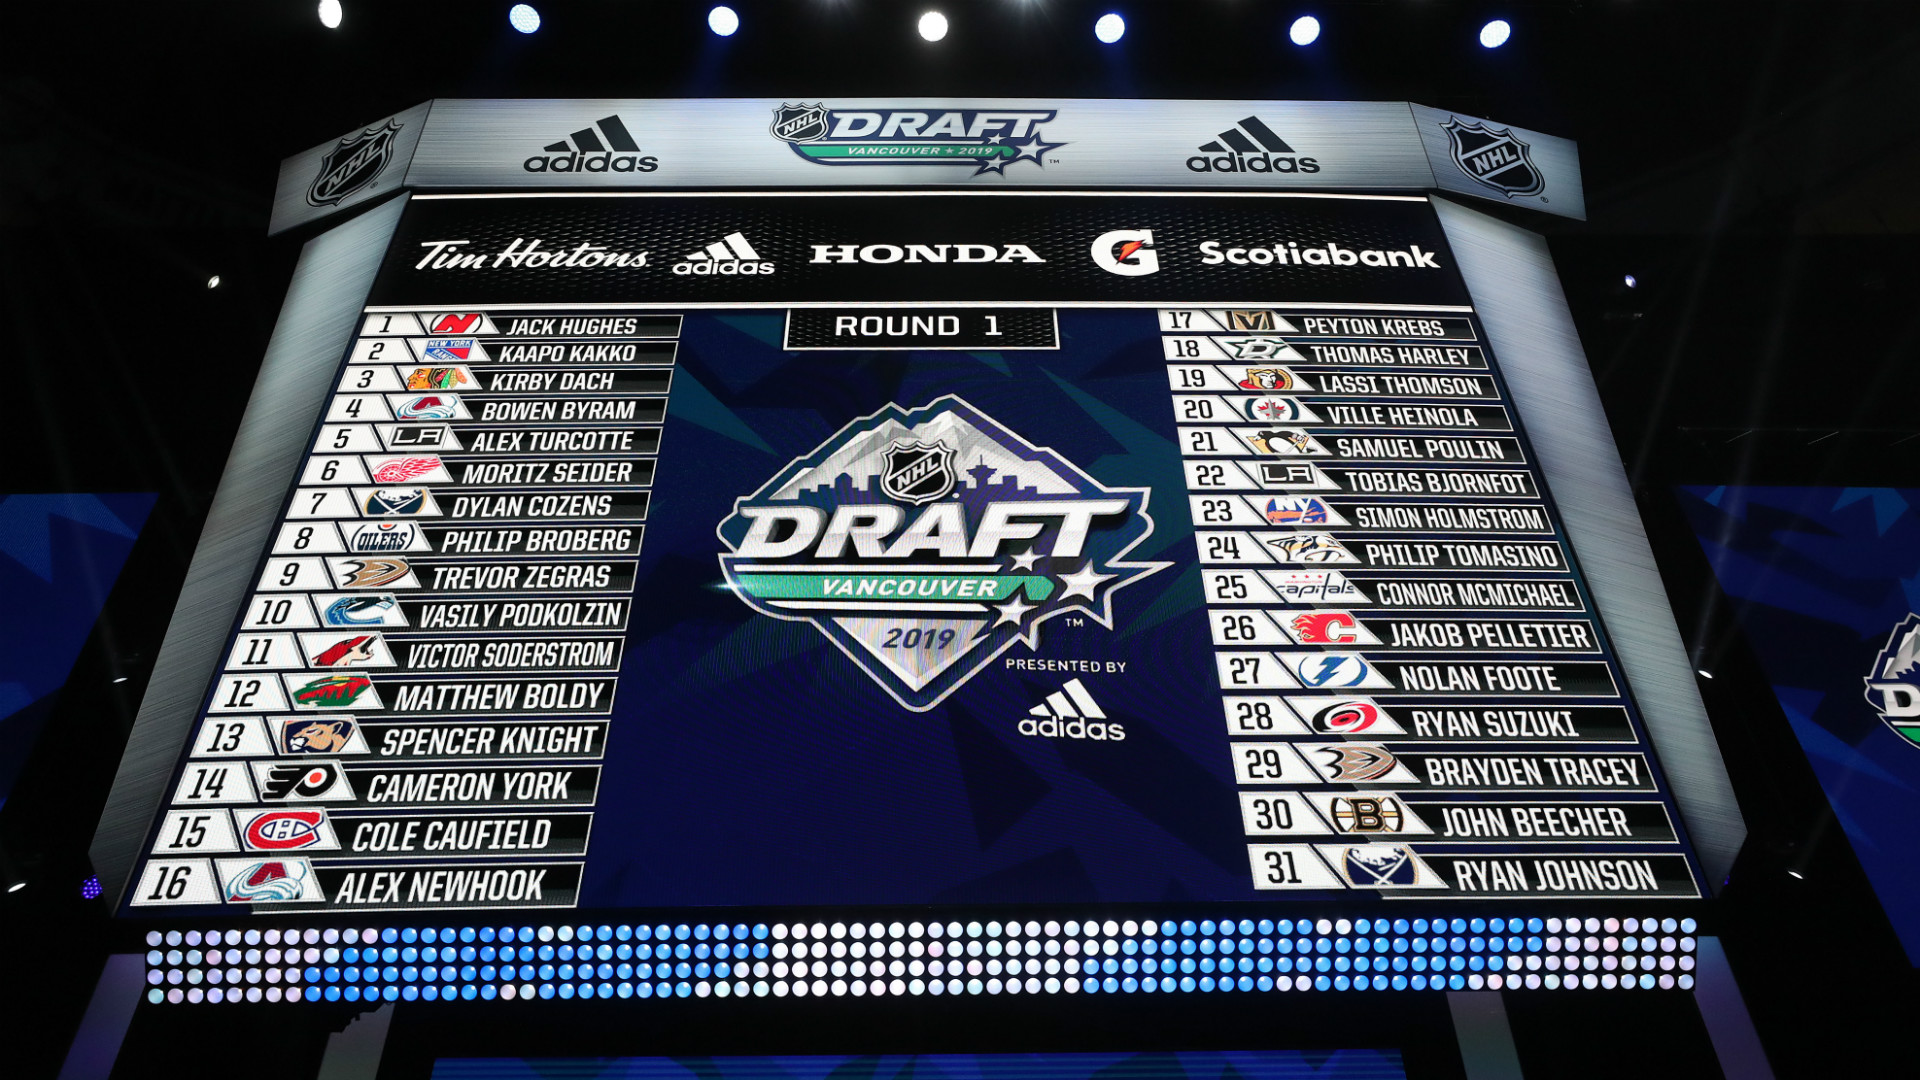 NHL Draft picks 2019: Complete list of results for Rounds 1